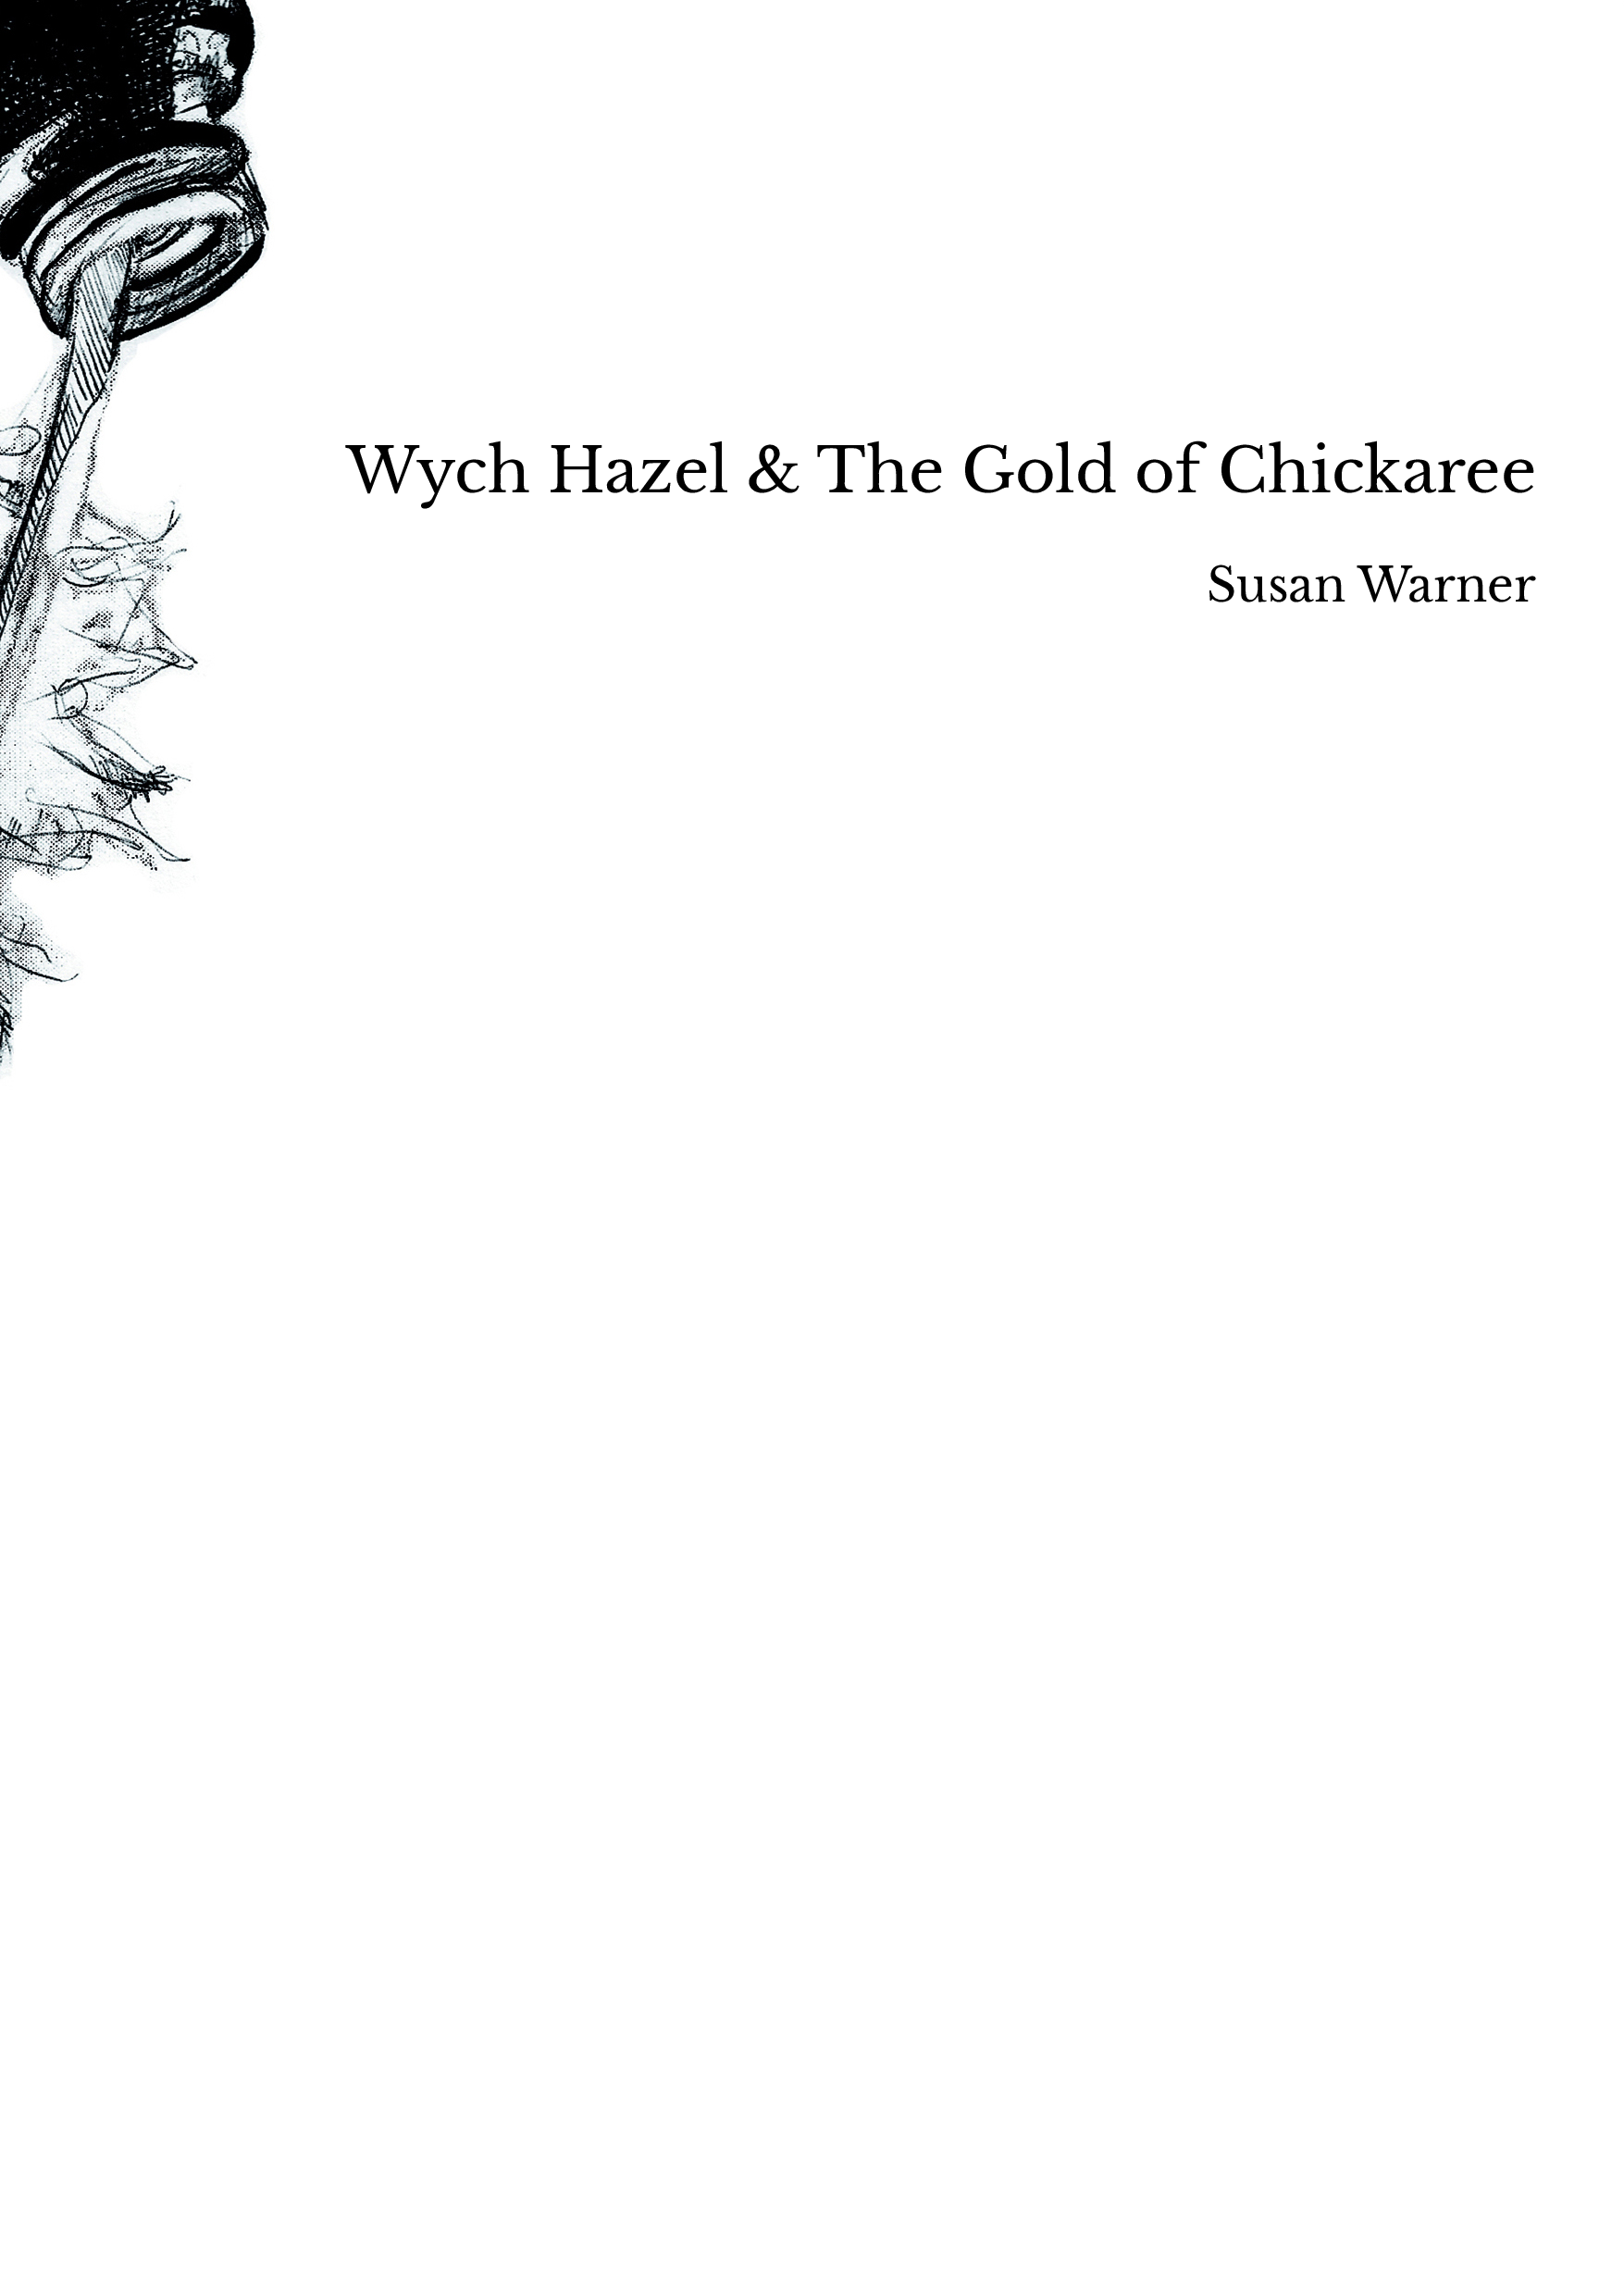 Wych Hazel & The Gold of Chickaree